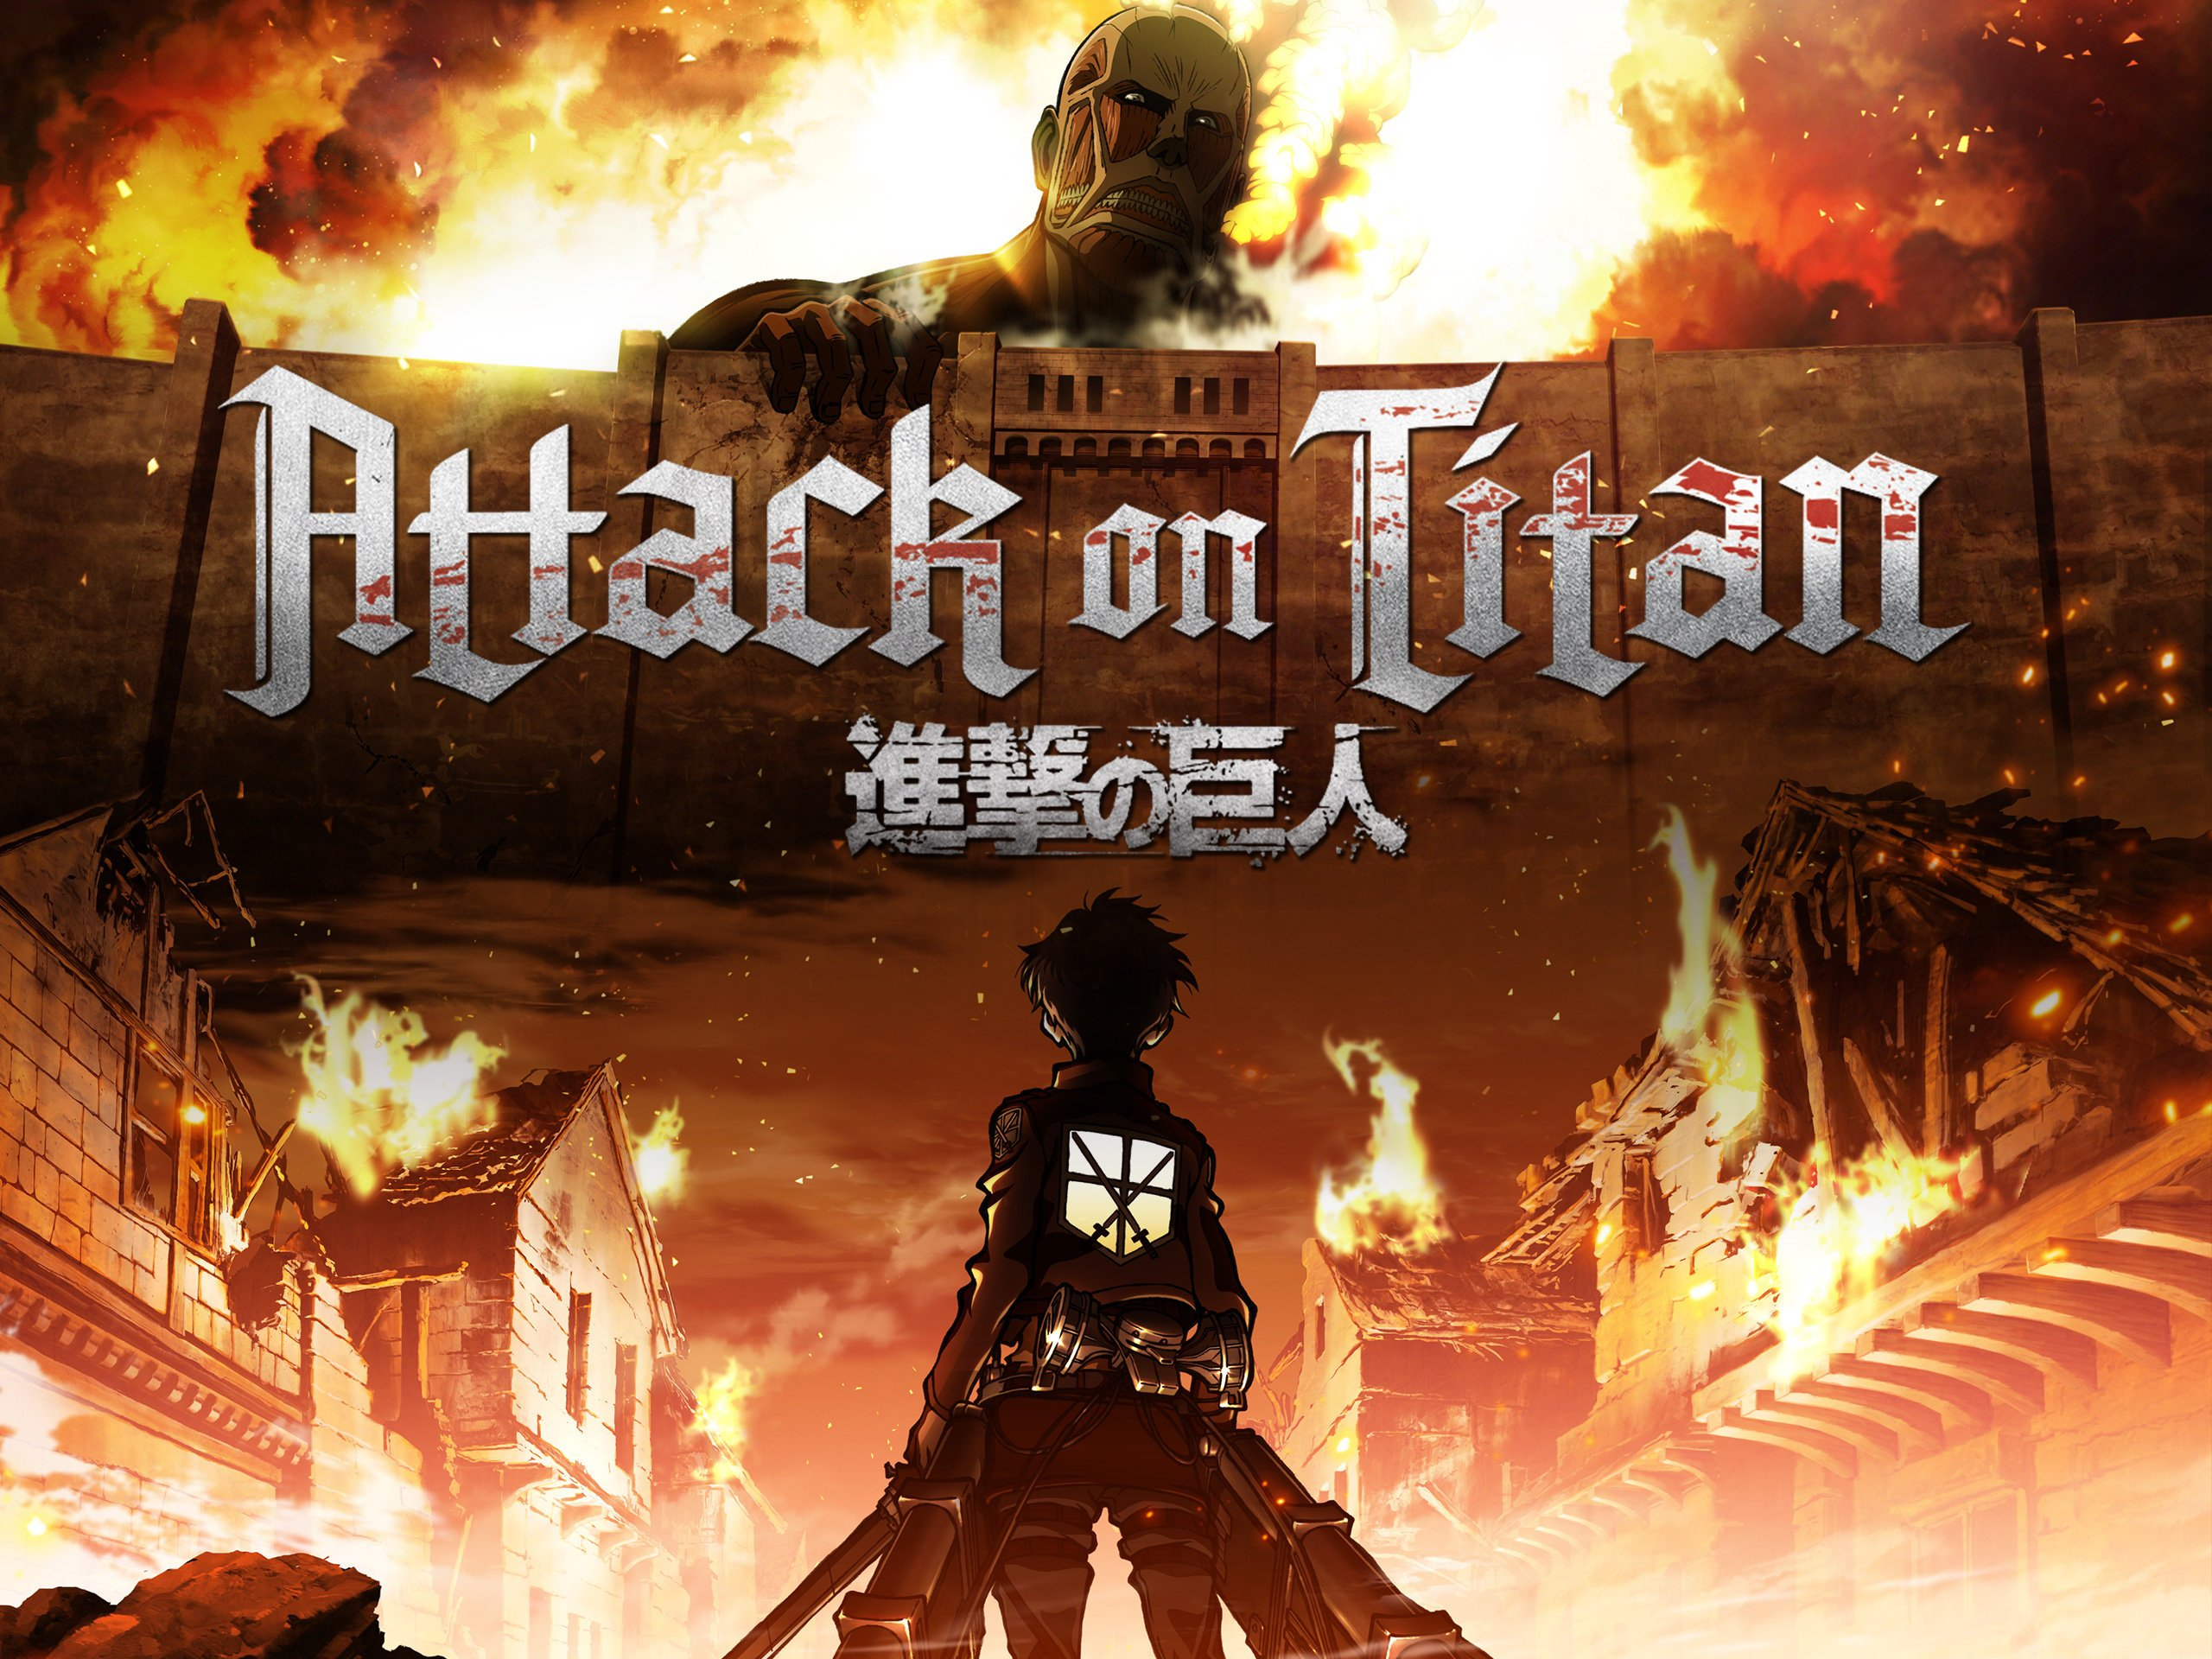 Toonami to Start Attack On Titan Over From Episode 1, Season 1 Starting March 2nd